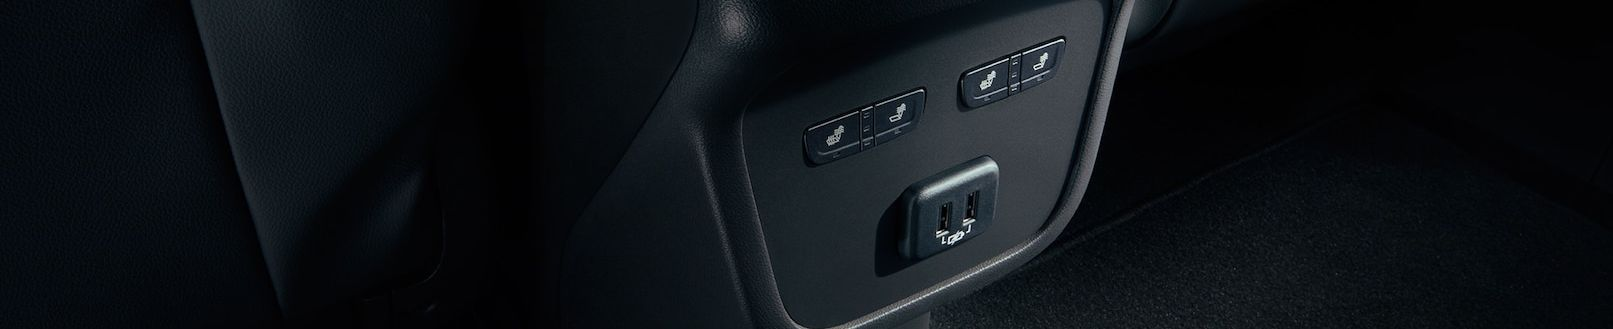 Power Options in the Back Row of the 2019 Equinox